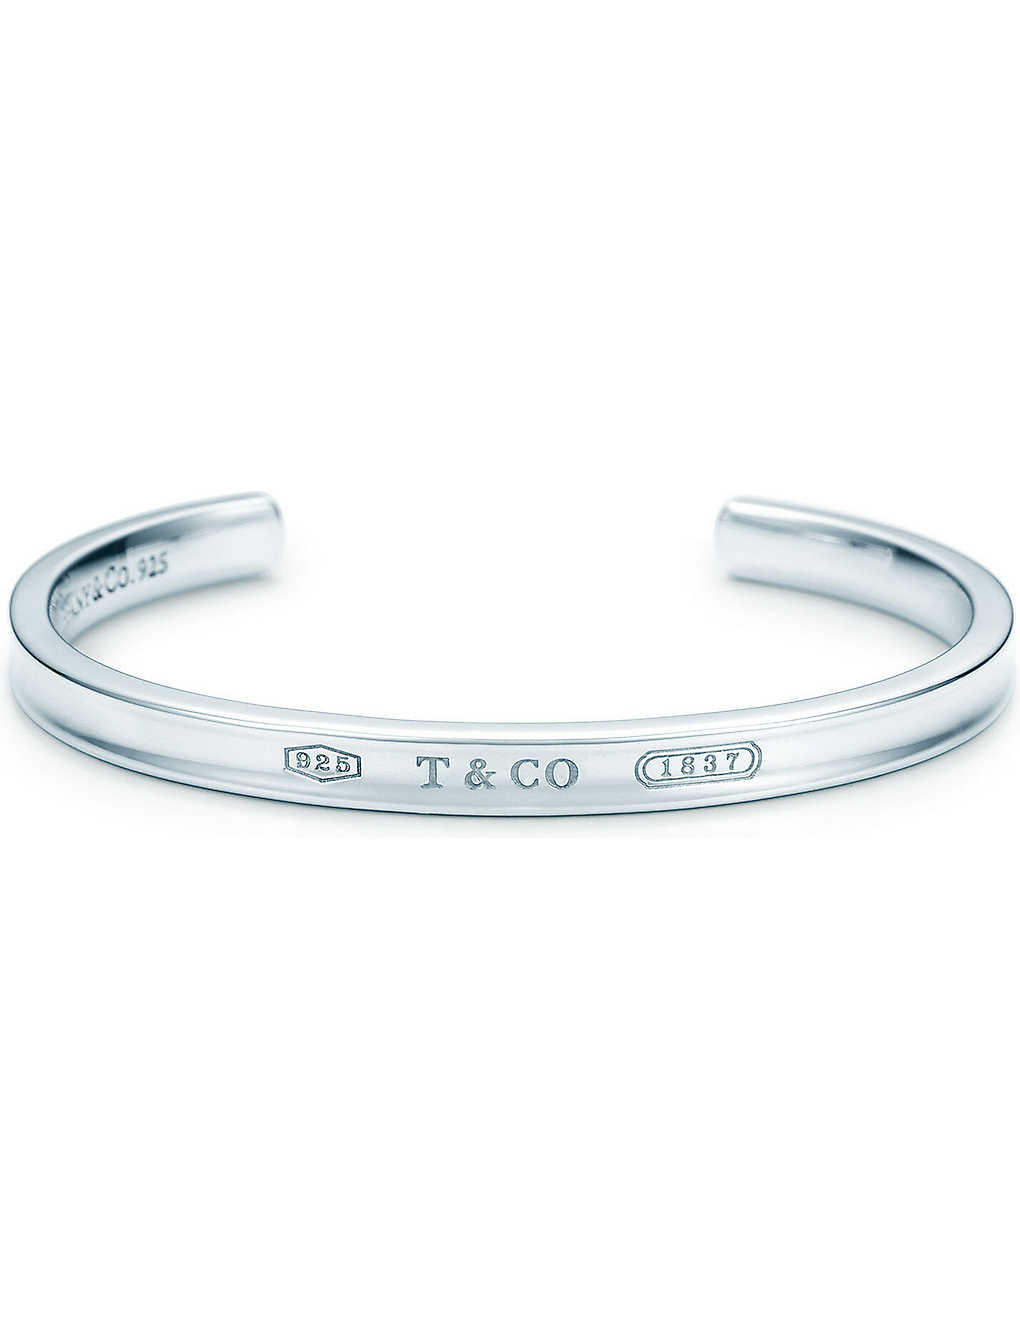 aadeae7c4 TIFFANY & CO - Tiffany 1837 cuff in sterling silver | Selfridges.com